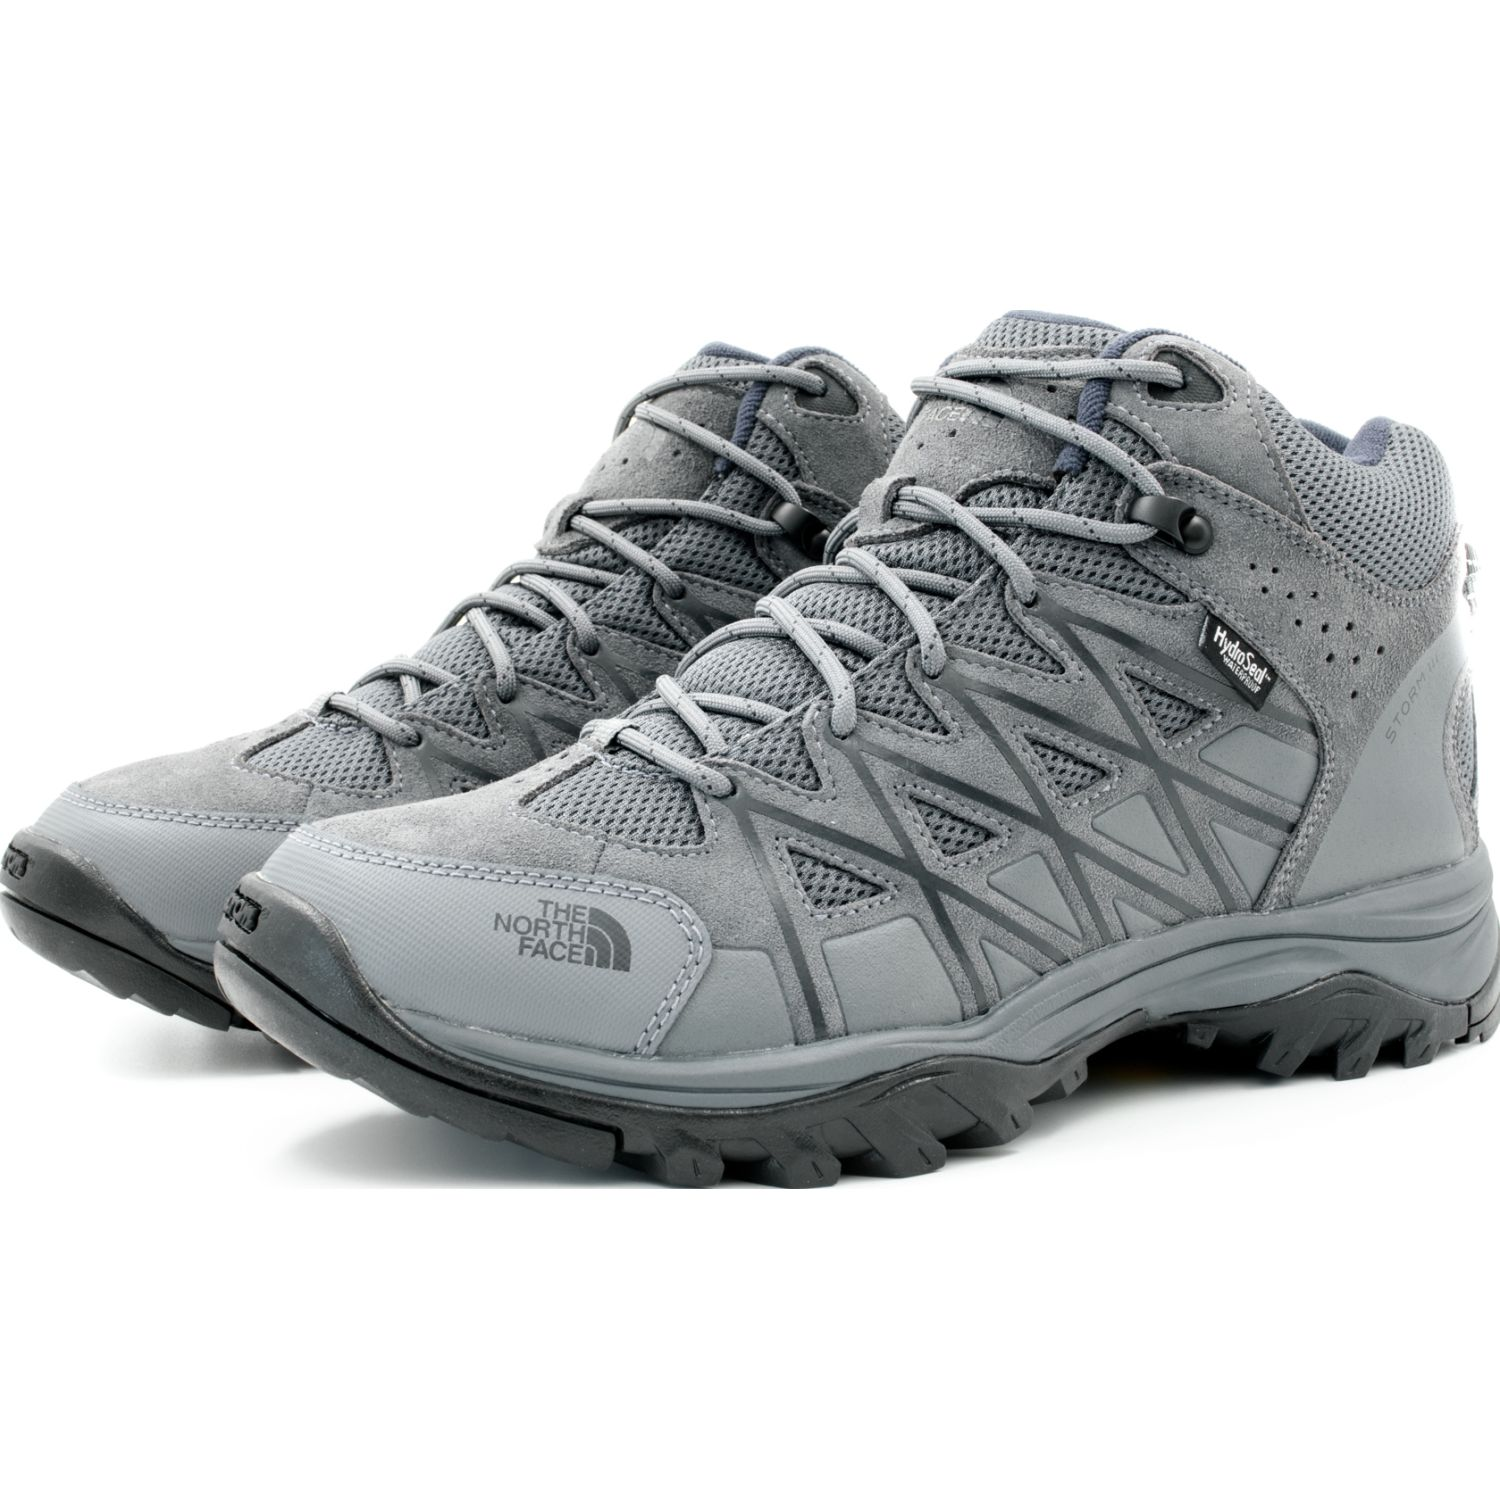 The North Face M Storm Iii Mid Wp Gris / negro Zapatos de senderismo